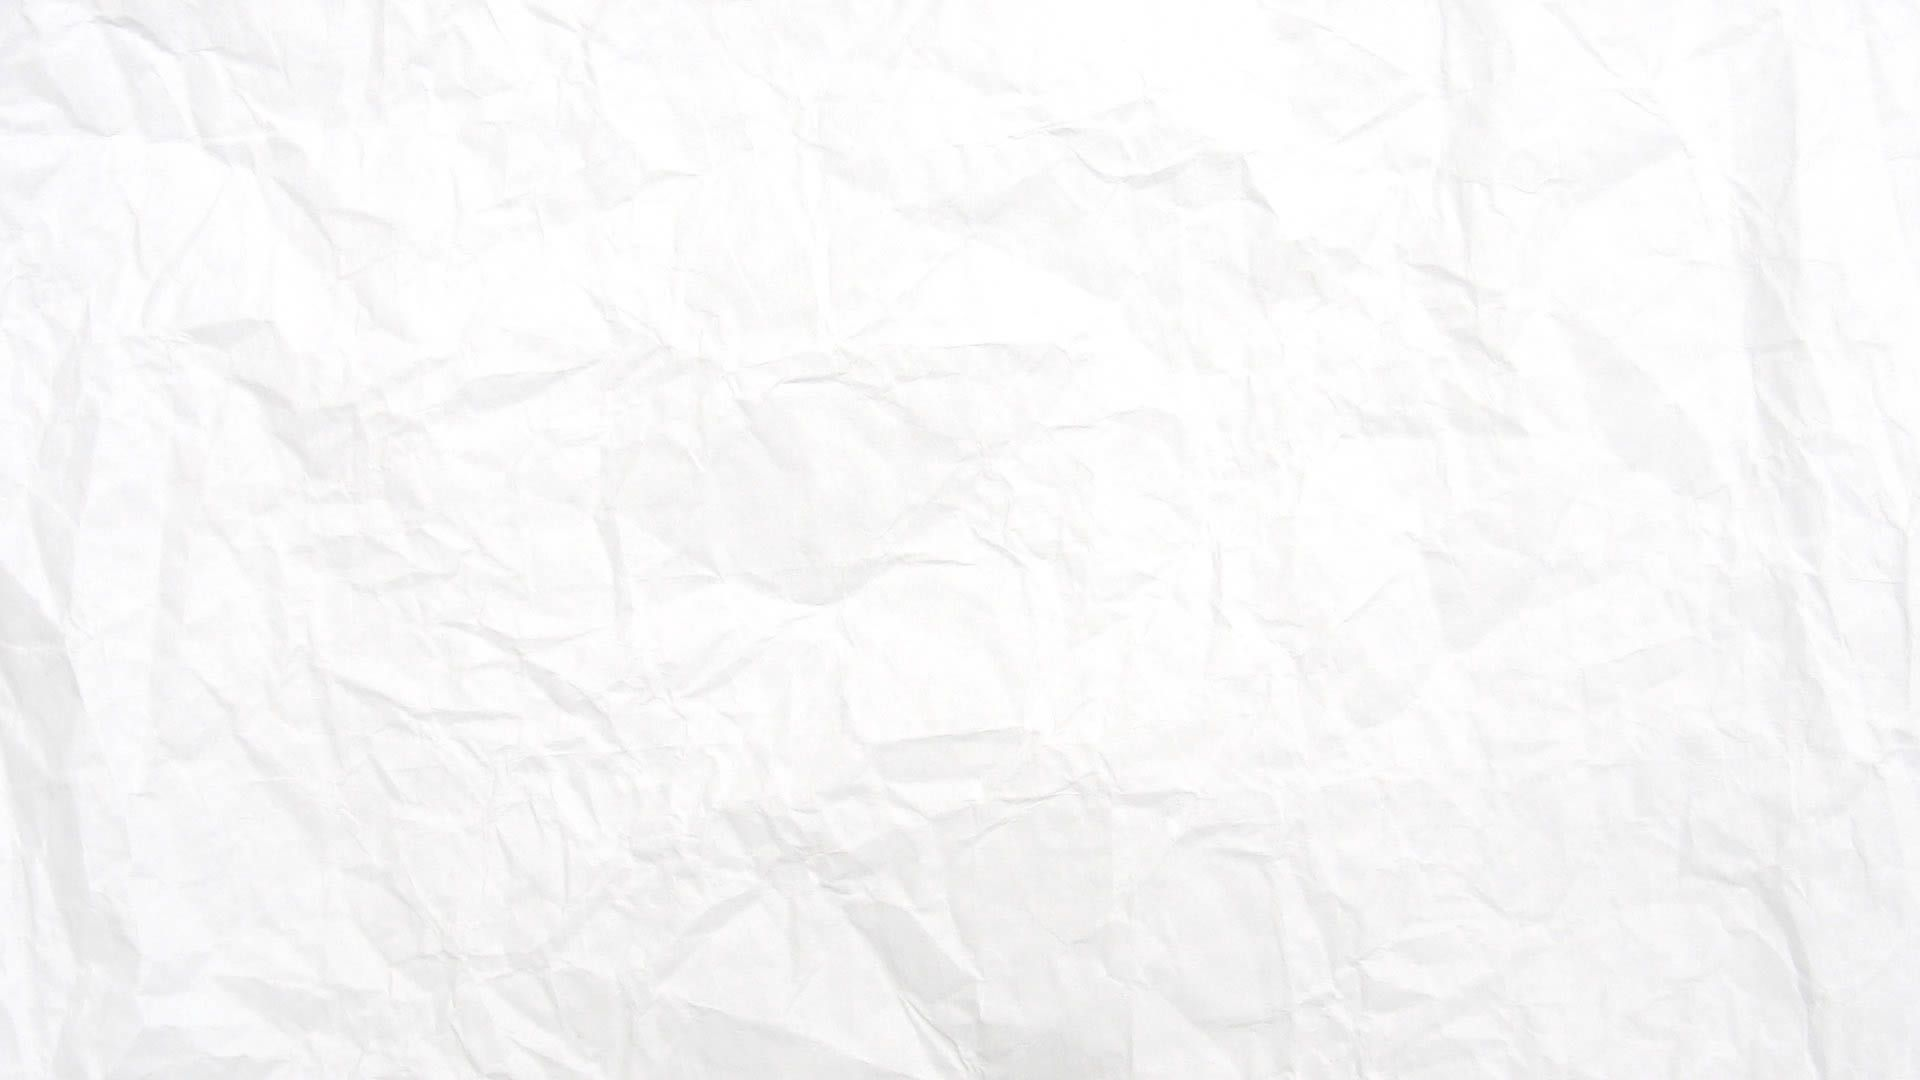 Blank White Wallpaper Android